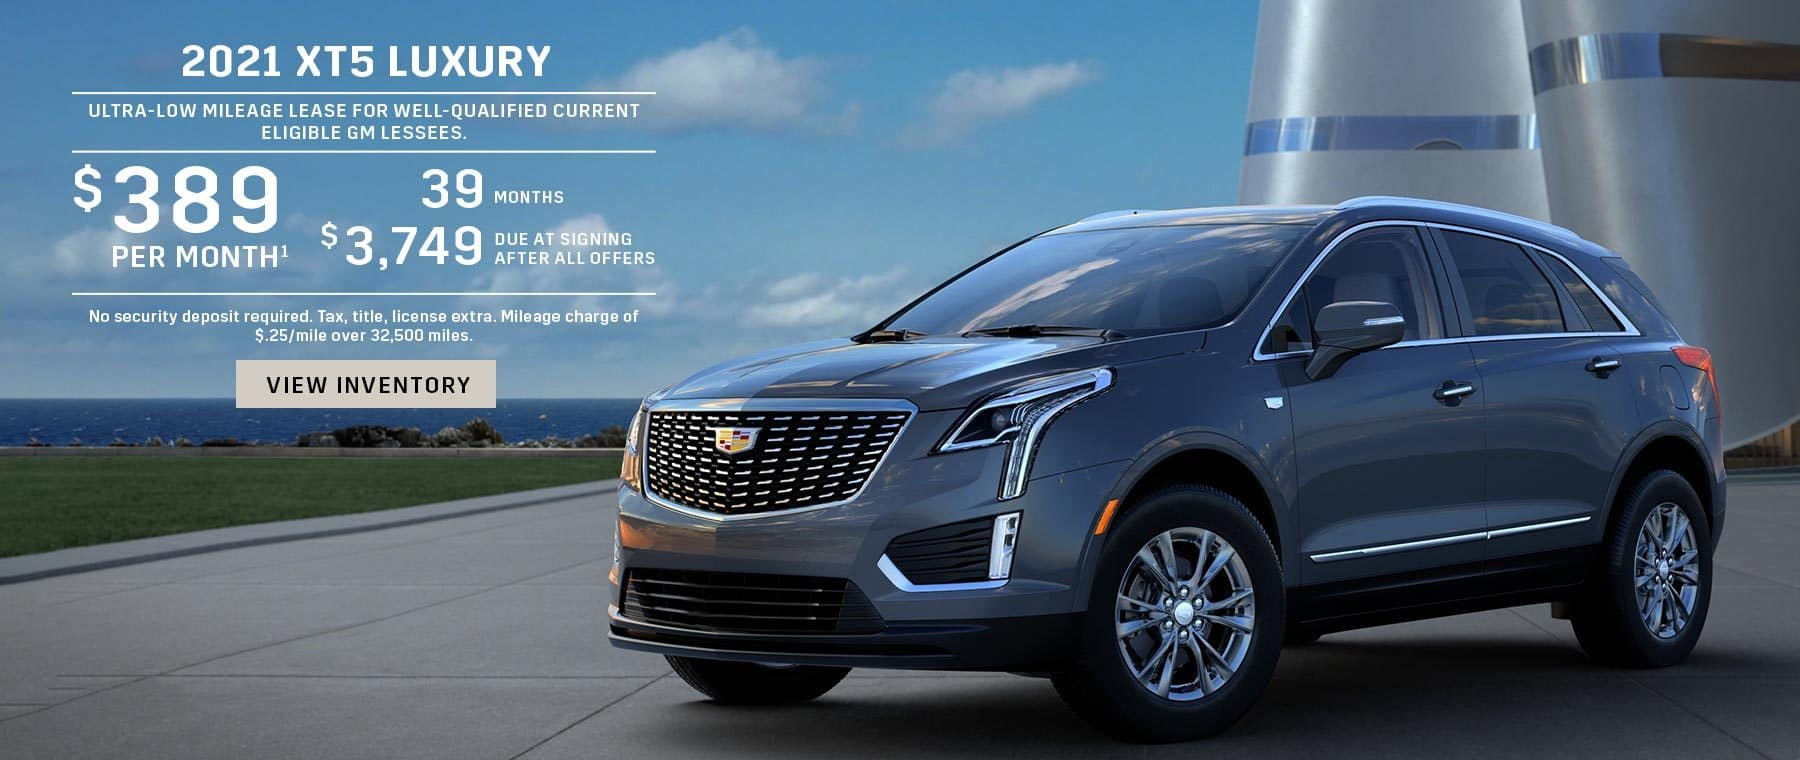 2021 XT5 Luxury. Ultra-low mileage lease for well-qualified current eligible GM lessees. $389 per month 39 months $3,749 due at signing after all offers. No security deposit required. Tax, title, license extra. Mileage charge of $.25/mile over 32,500 miles.